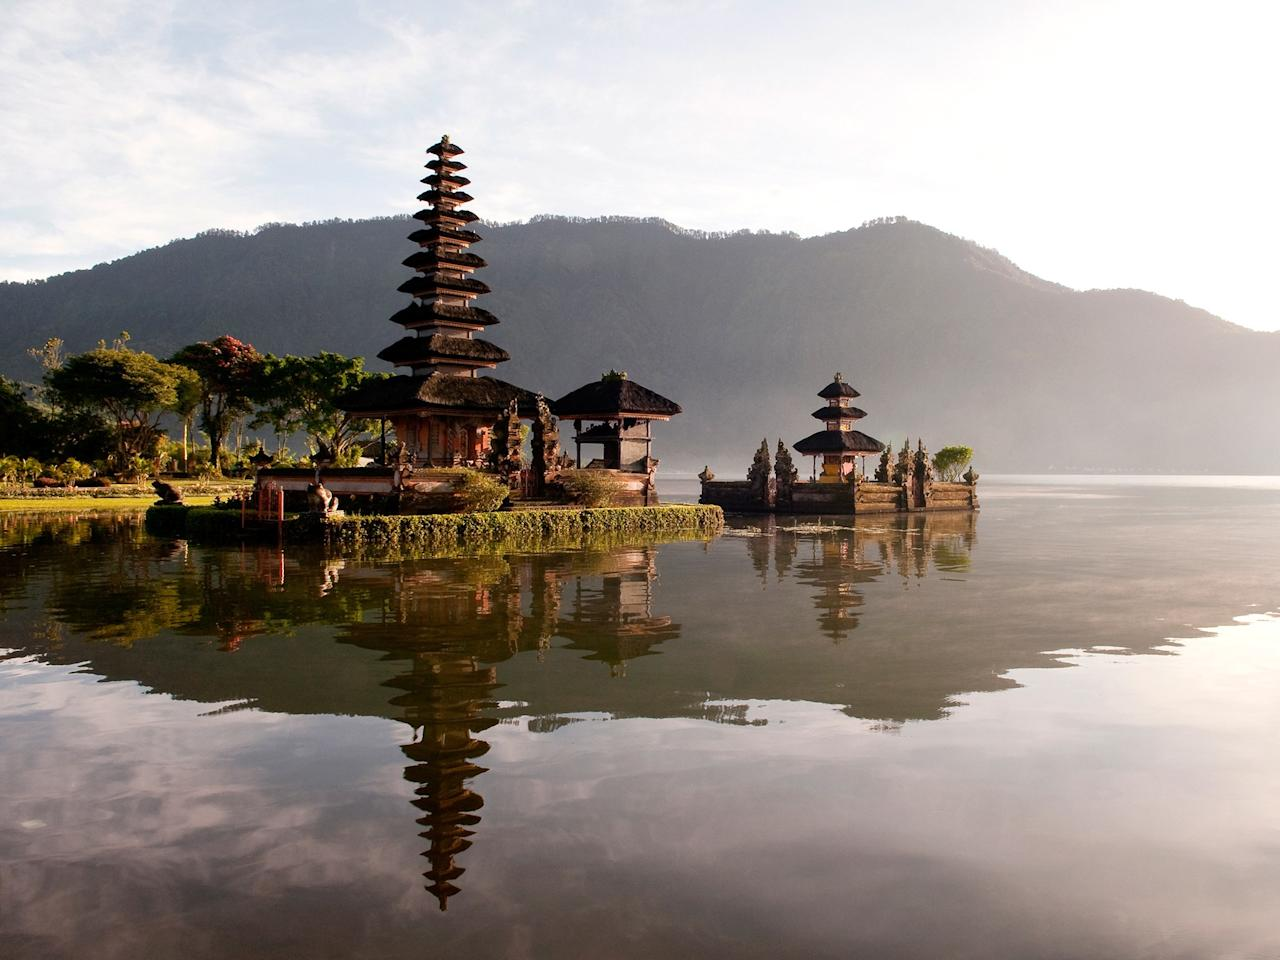 """<p>There's nowhere quite like <a href=""""https://www.cntraveler.com/destinations/bali?mbid=synd_yahoo_rss"""">Bali</a>. It's the kind of place where you'll eat the best fresh fish of your life on the beach with your feet in the sand. You'll watch whole families zoom by on motorbikes, or maybe a monkey will steal your glasses at Uluwatu temple. Despite high—and still growing—tourist numbers, you can still find vestiges of old Bali in small villages surrounded by rice paddies, where you'll hear the twinkling chimes of neighborhood gamelan ensembles rehearsing at all hours of the day and night. Note: Mount Agung, the volcano considered holy by the Balinese, has been even more active than usual for the past year, so <a href=""""https://www.cntraveler.com/story/balis-mount-agung-volcano-what-travelers-should-know?mbid=synd_yahoo_rss"""">double-check</a> the latest seismic and volcanic activity before departing.</p> <p><strong>Pro tip</strong>: Avoid Denpasar, where you fly in, and Kuta, a tourist trap; visit <a href=""""https://www.cntraveler.com/stories/2015-12-01/ubud-bali-before-the-eat-pray-love-effect?mbid=synd_yahoo_rss"""">culturally rich Ubud</a> instead, and use it as a jumping off point to explore beyond. Take a day trip to Sidemen, which has all the rice paddies without the selfie-takers, or go even farther, to the village of Munduk in the mountains.</p> <p><strong>Getting there</strong>: Many international airlines fly to Bali from hubs in Singapore, Kuala Lumpur, and Hong Kong.</p>"""